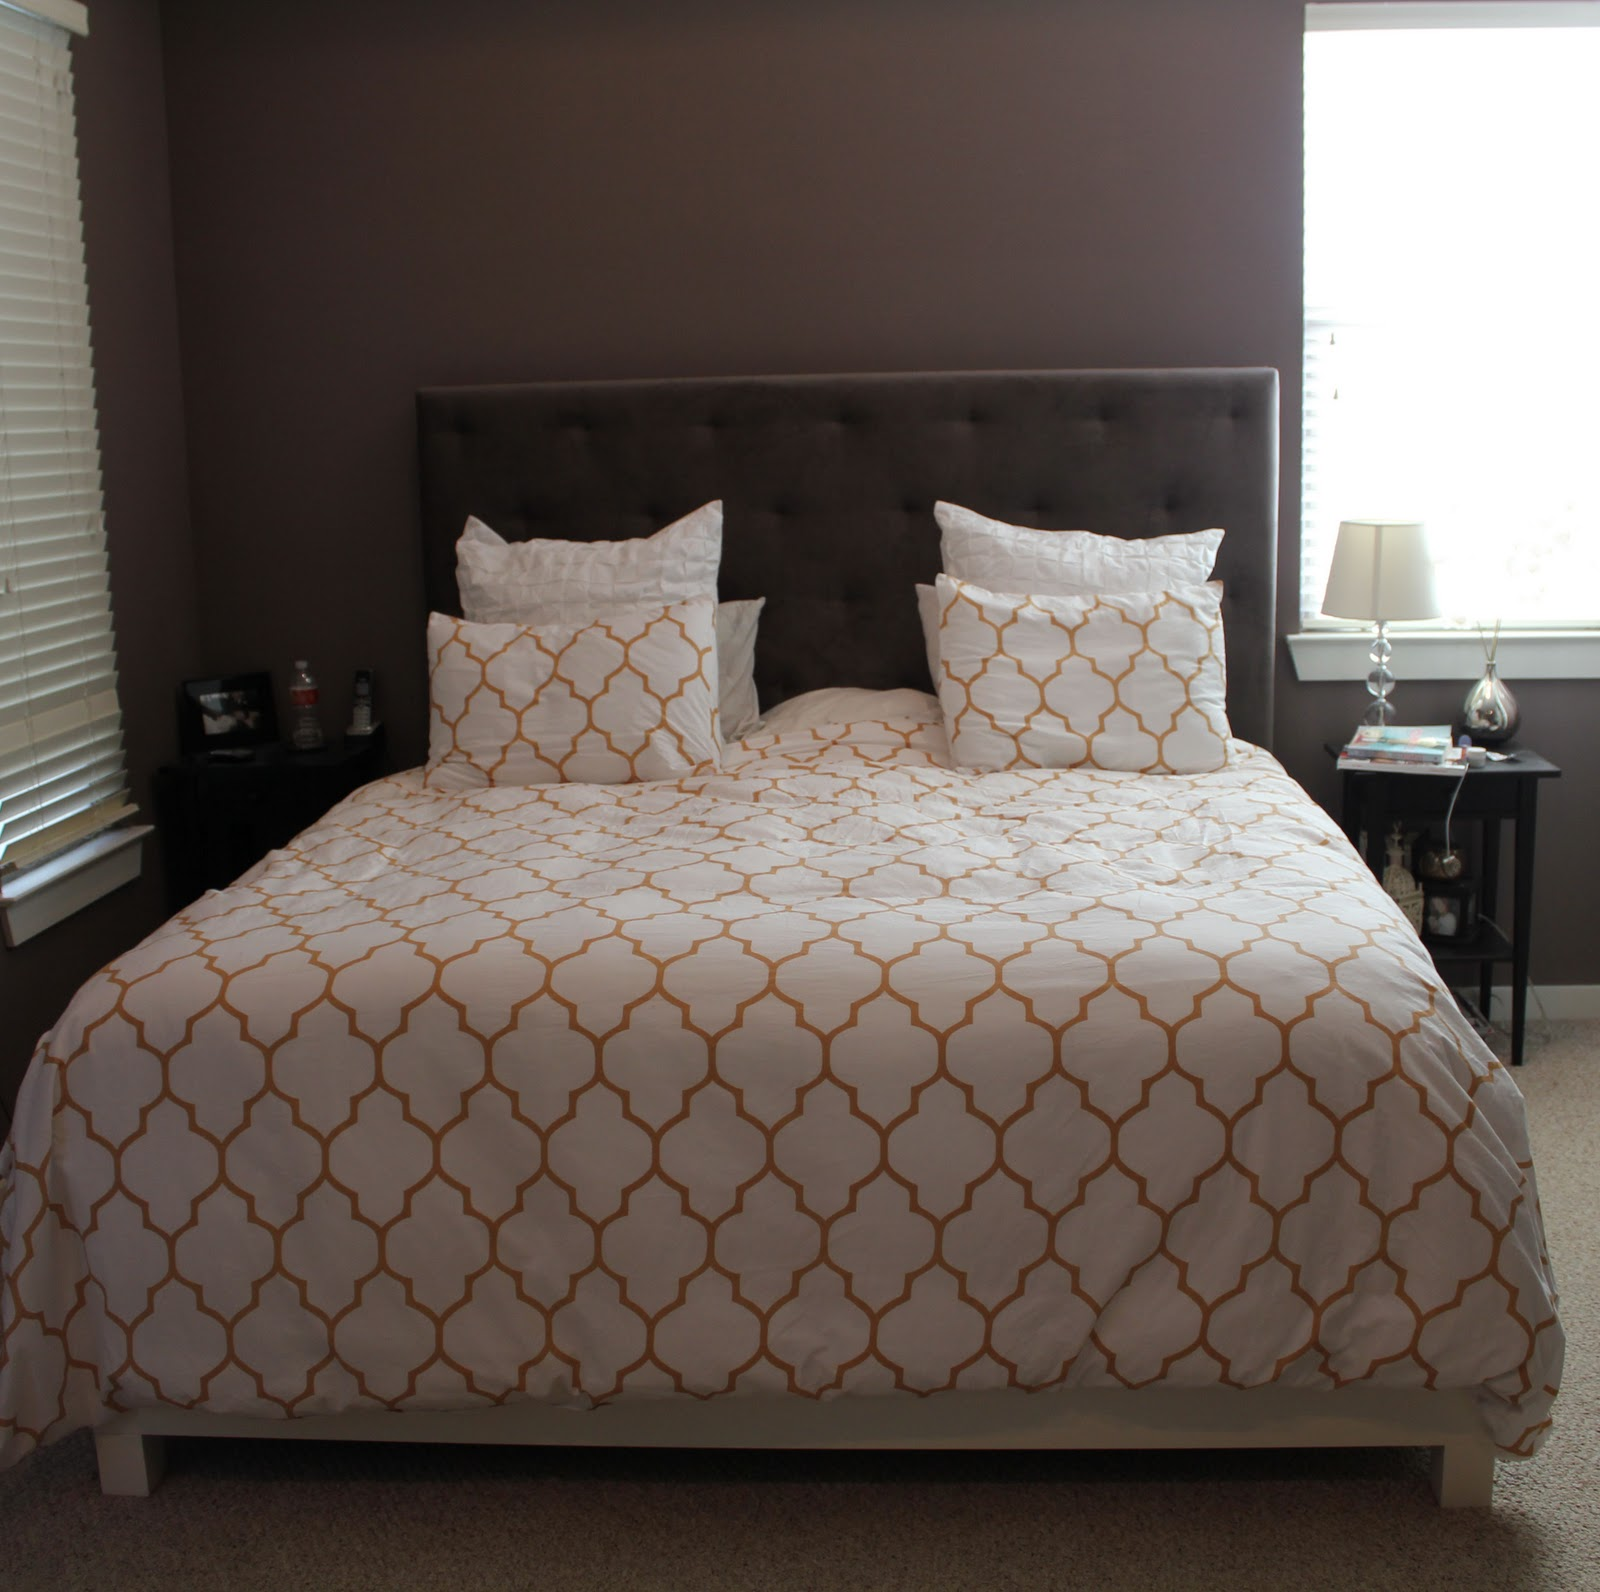 Updating Your Bedroom For Spring Our New Brocade Home Duvet